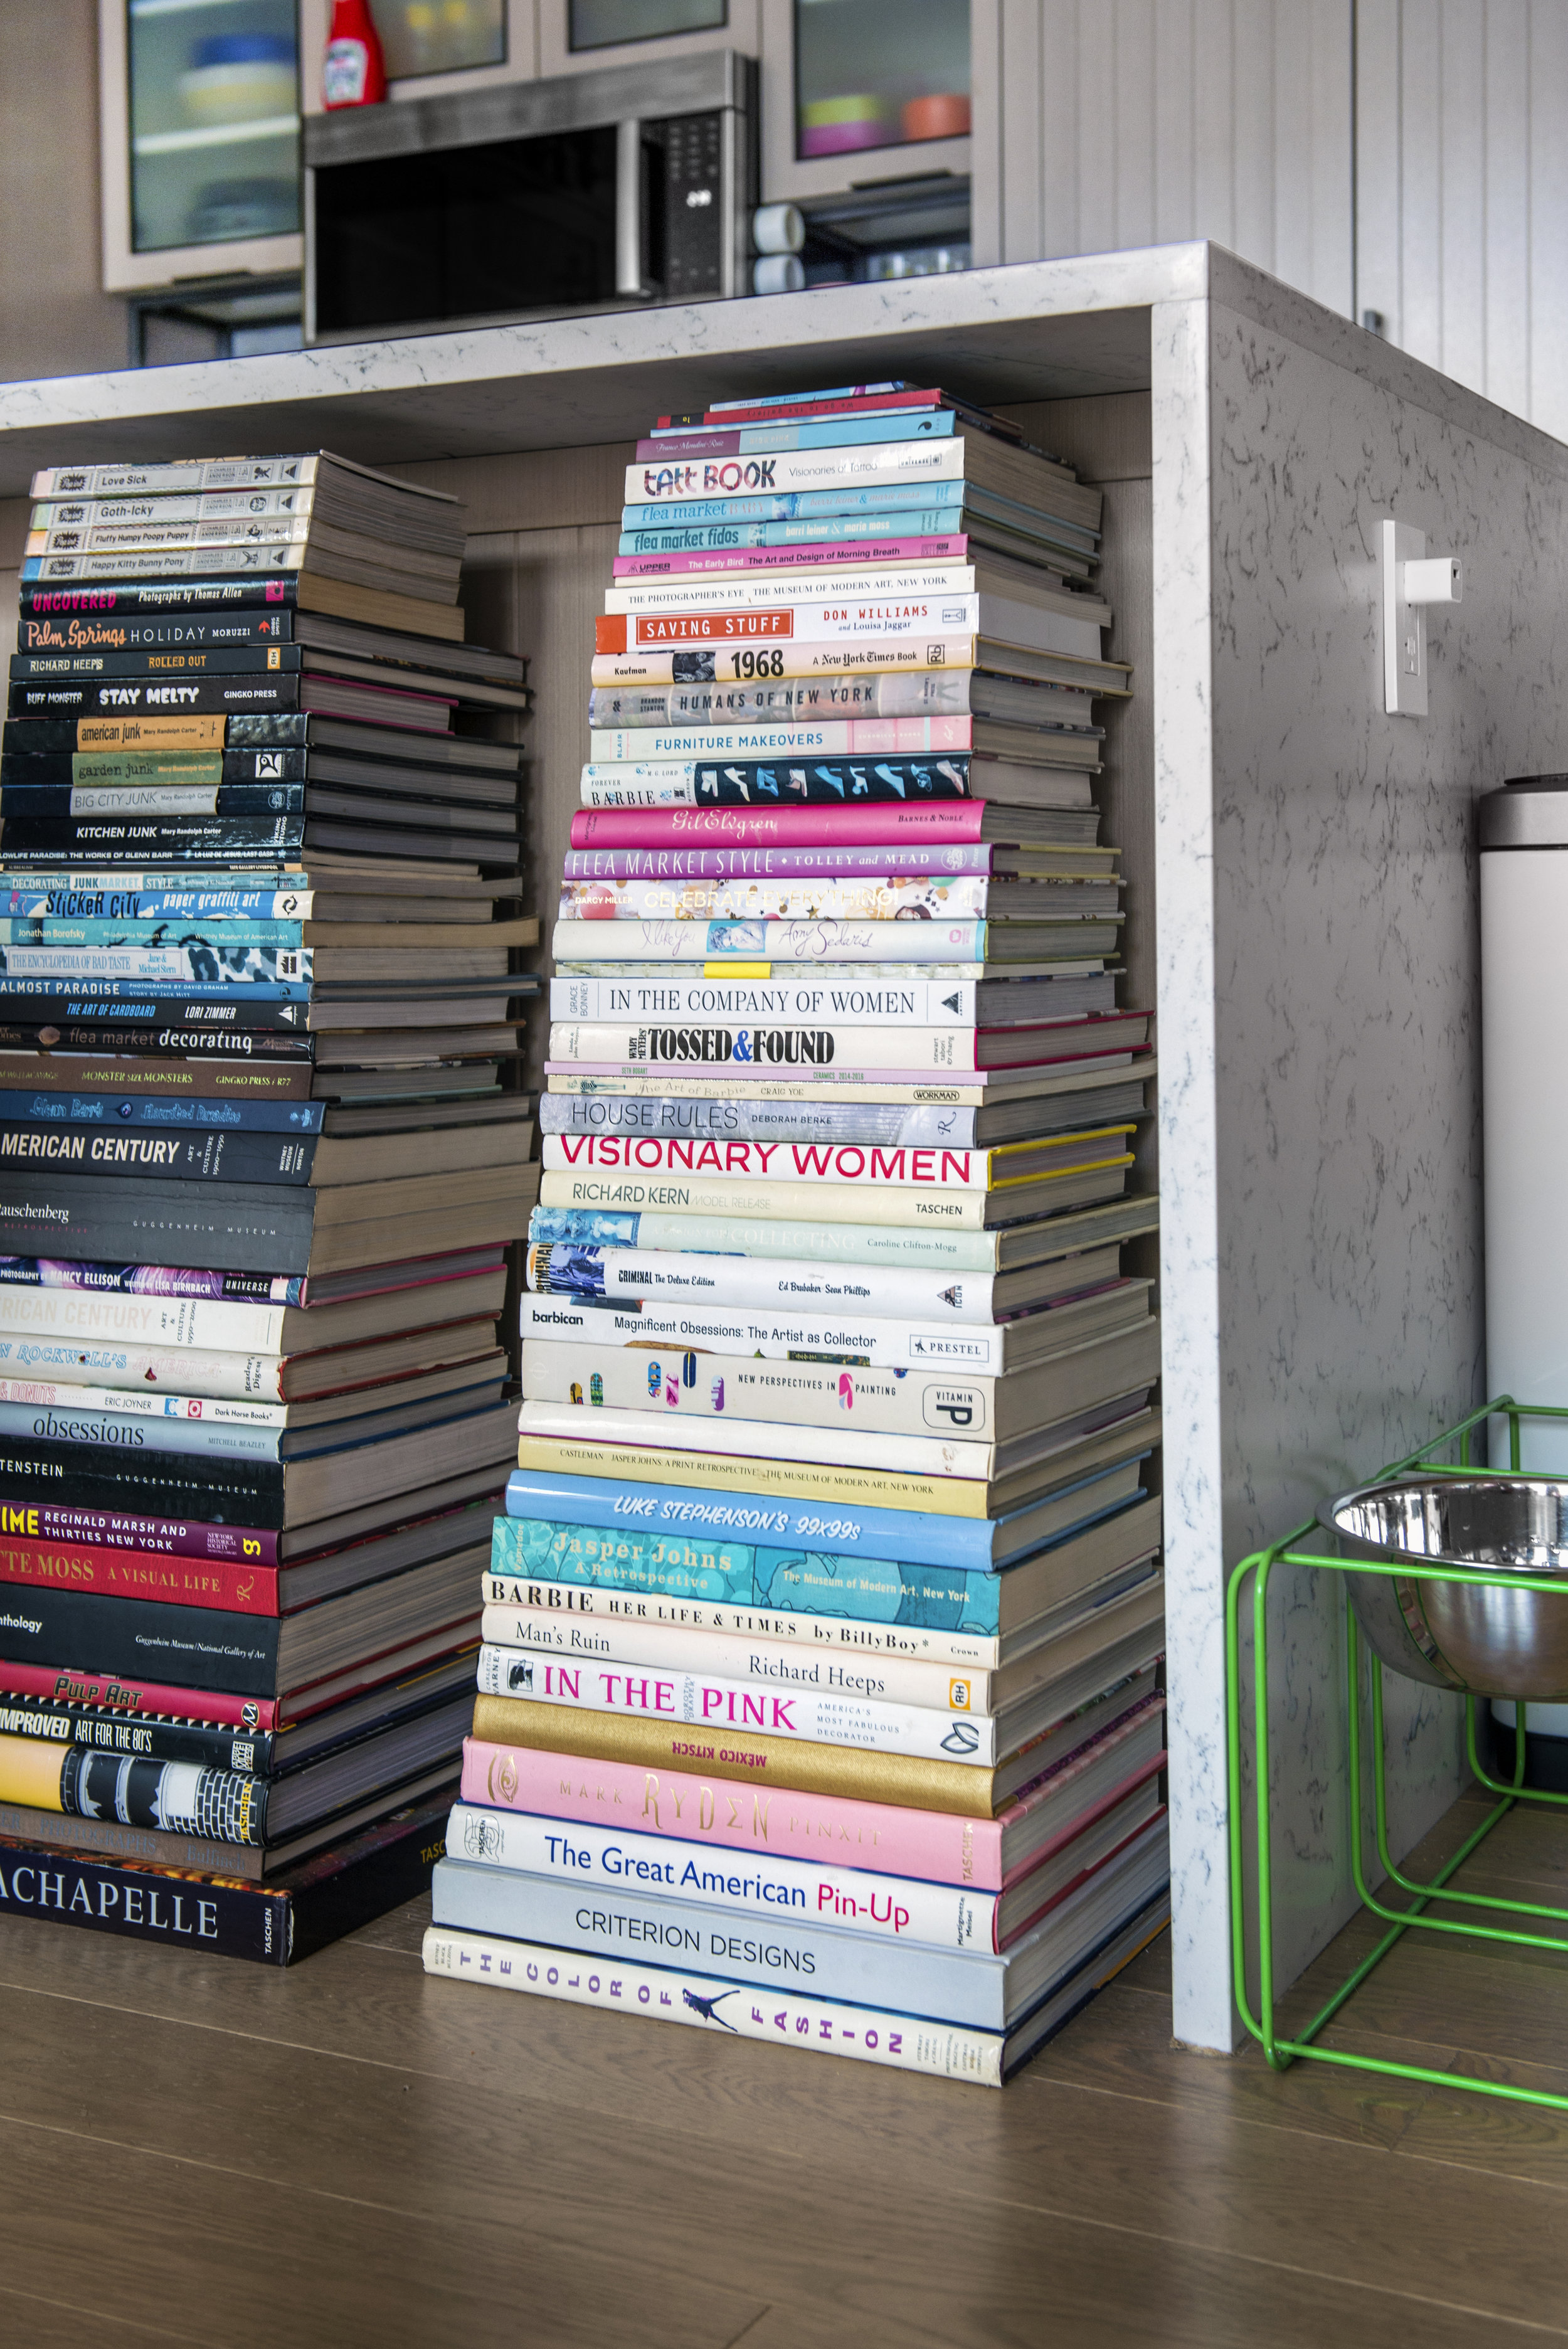 Books - AHW_4357 - photo by Andrew Werner.jpg